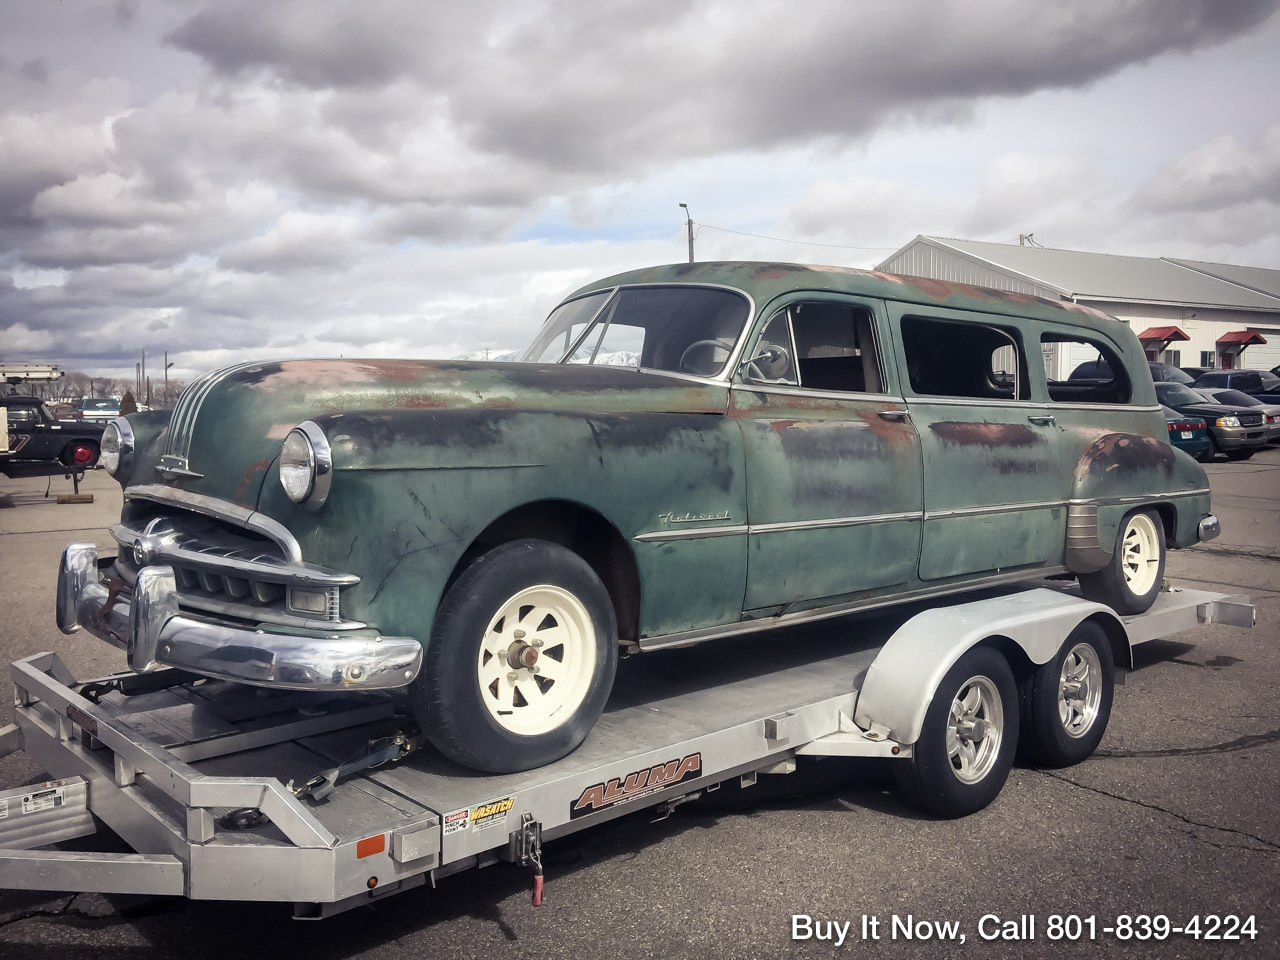 1949 Pontiac Chieftain Deluxe hearse